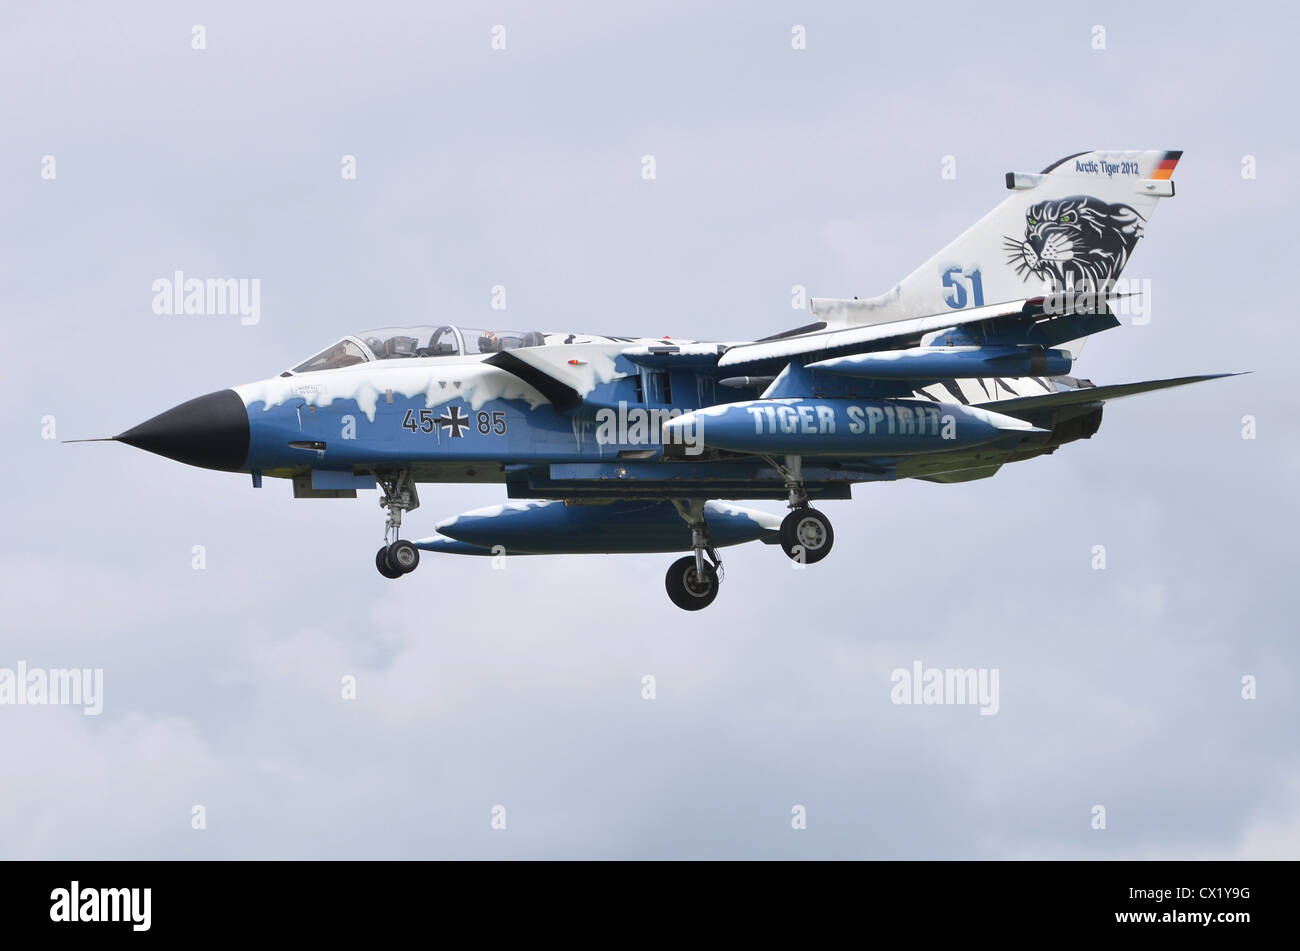 Panavia Tornado IDS in Arctic Tiger 2012 markings, operated by the German Air Force, on approach for landing at - Stock Image